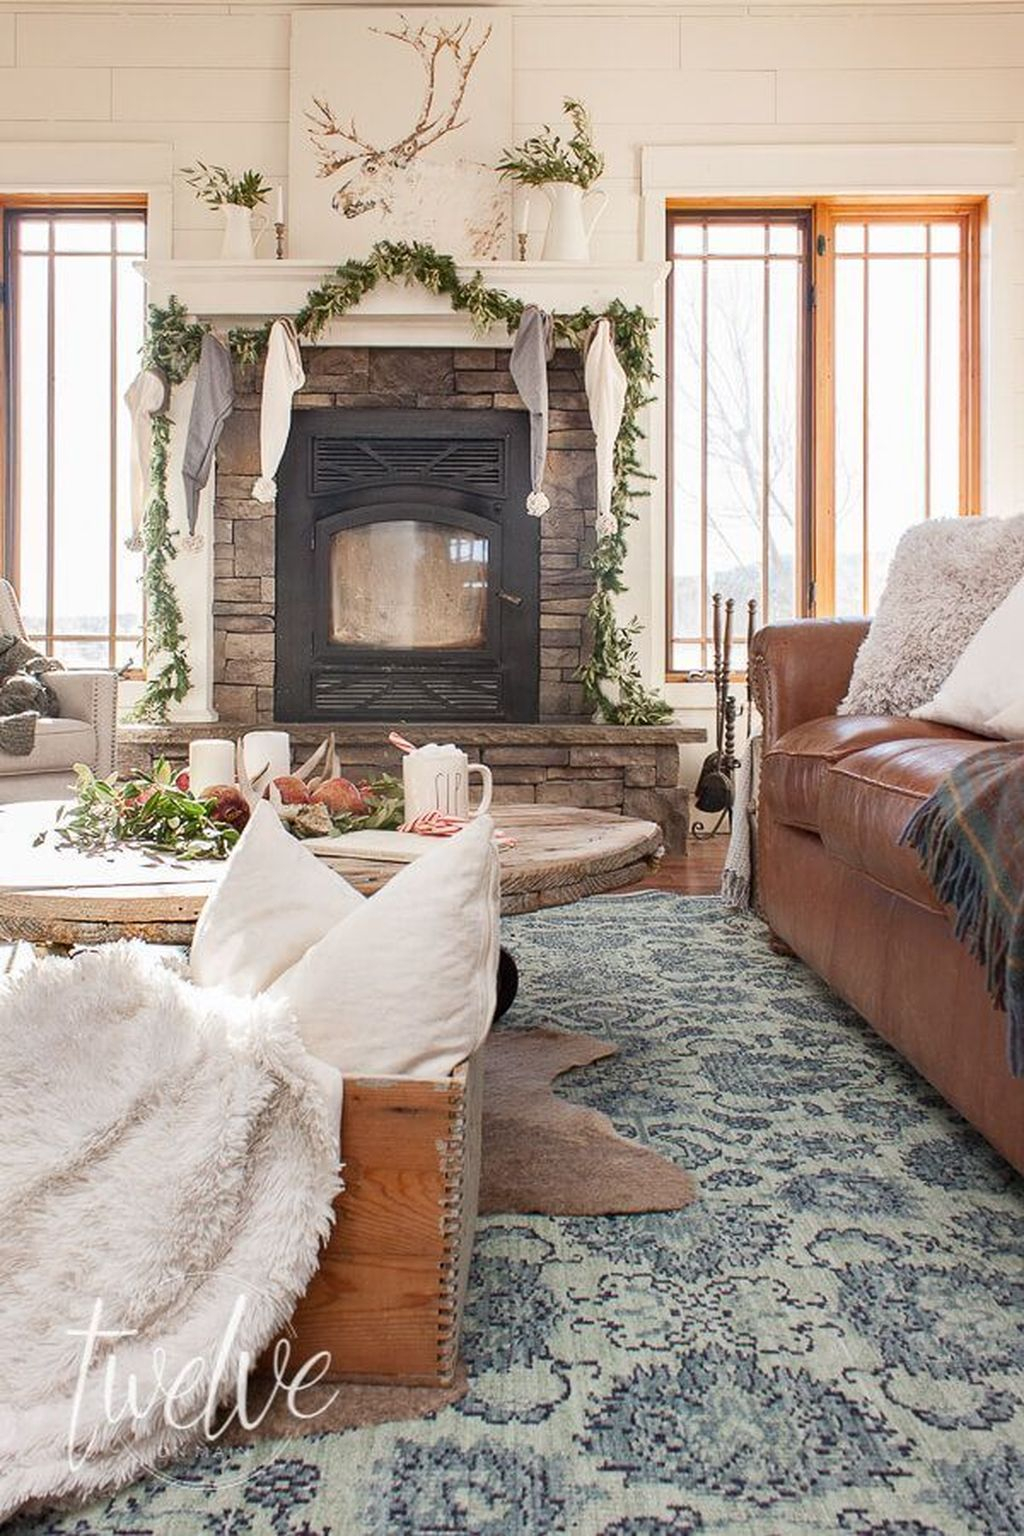 Cozy living room decor ideas to make anyone feel right at home 30